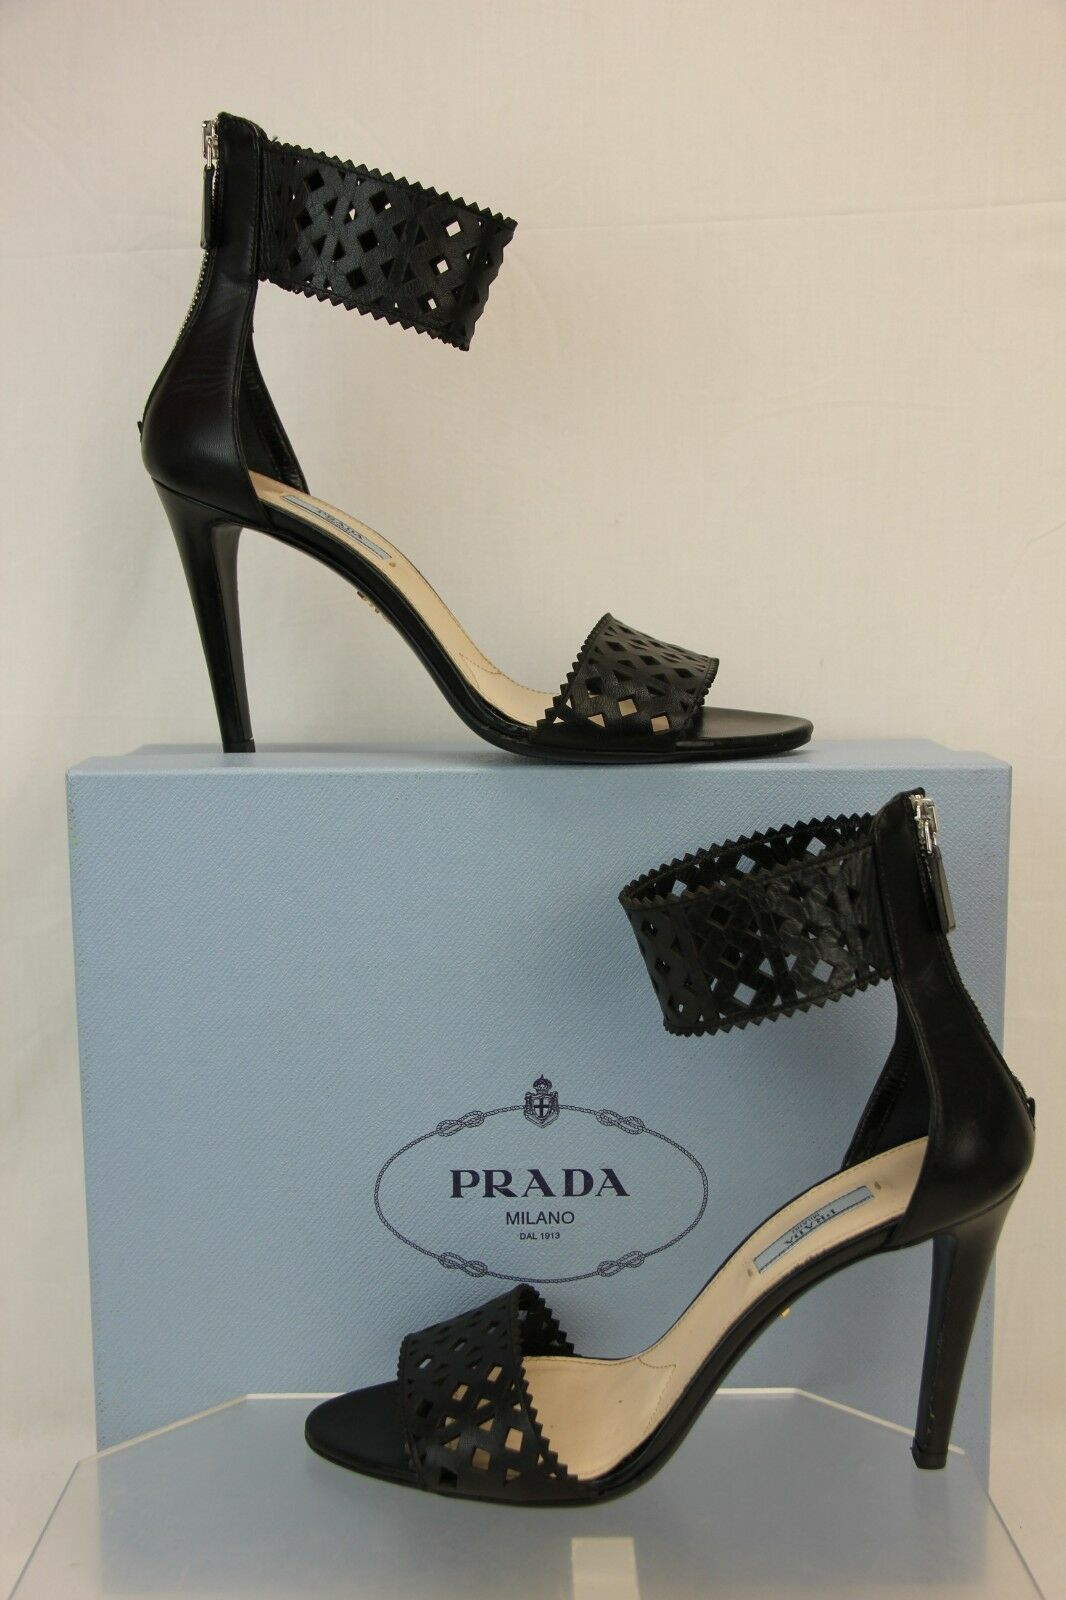 NIB NIB NIB PRADA schwarz LEATHER ANKLE WRAP CUFF LASER CUT OUT ZIP SANDALS PUMPS 41 8172e5